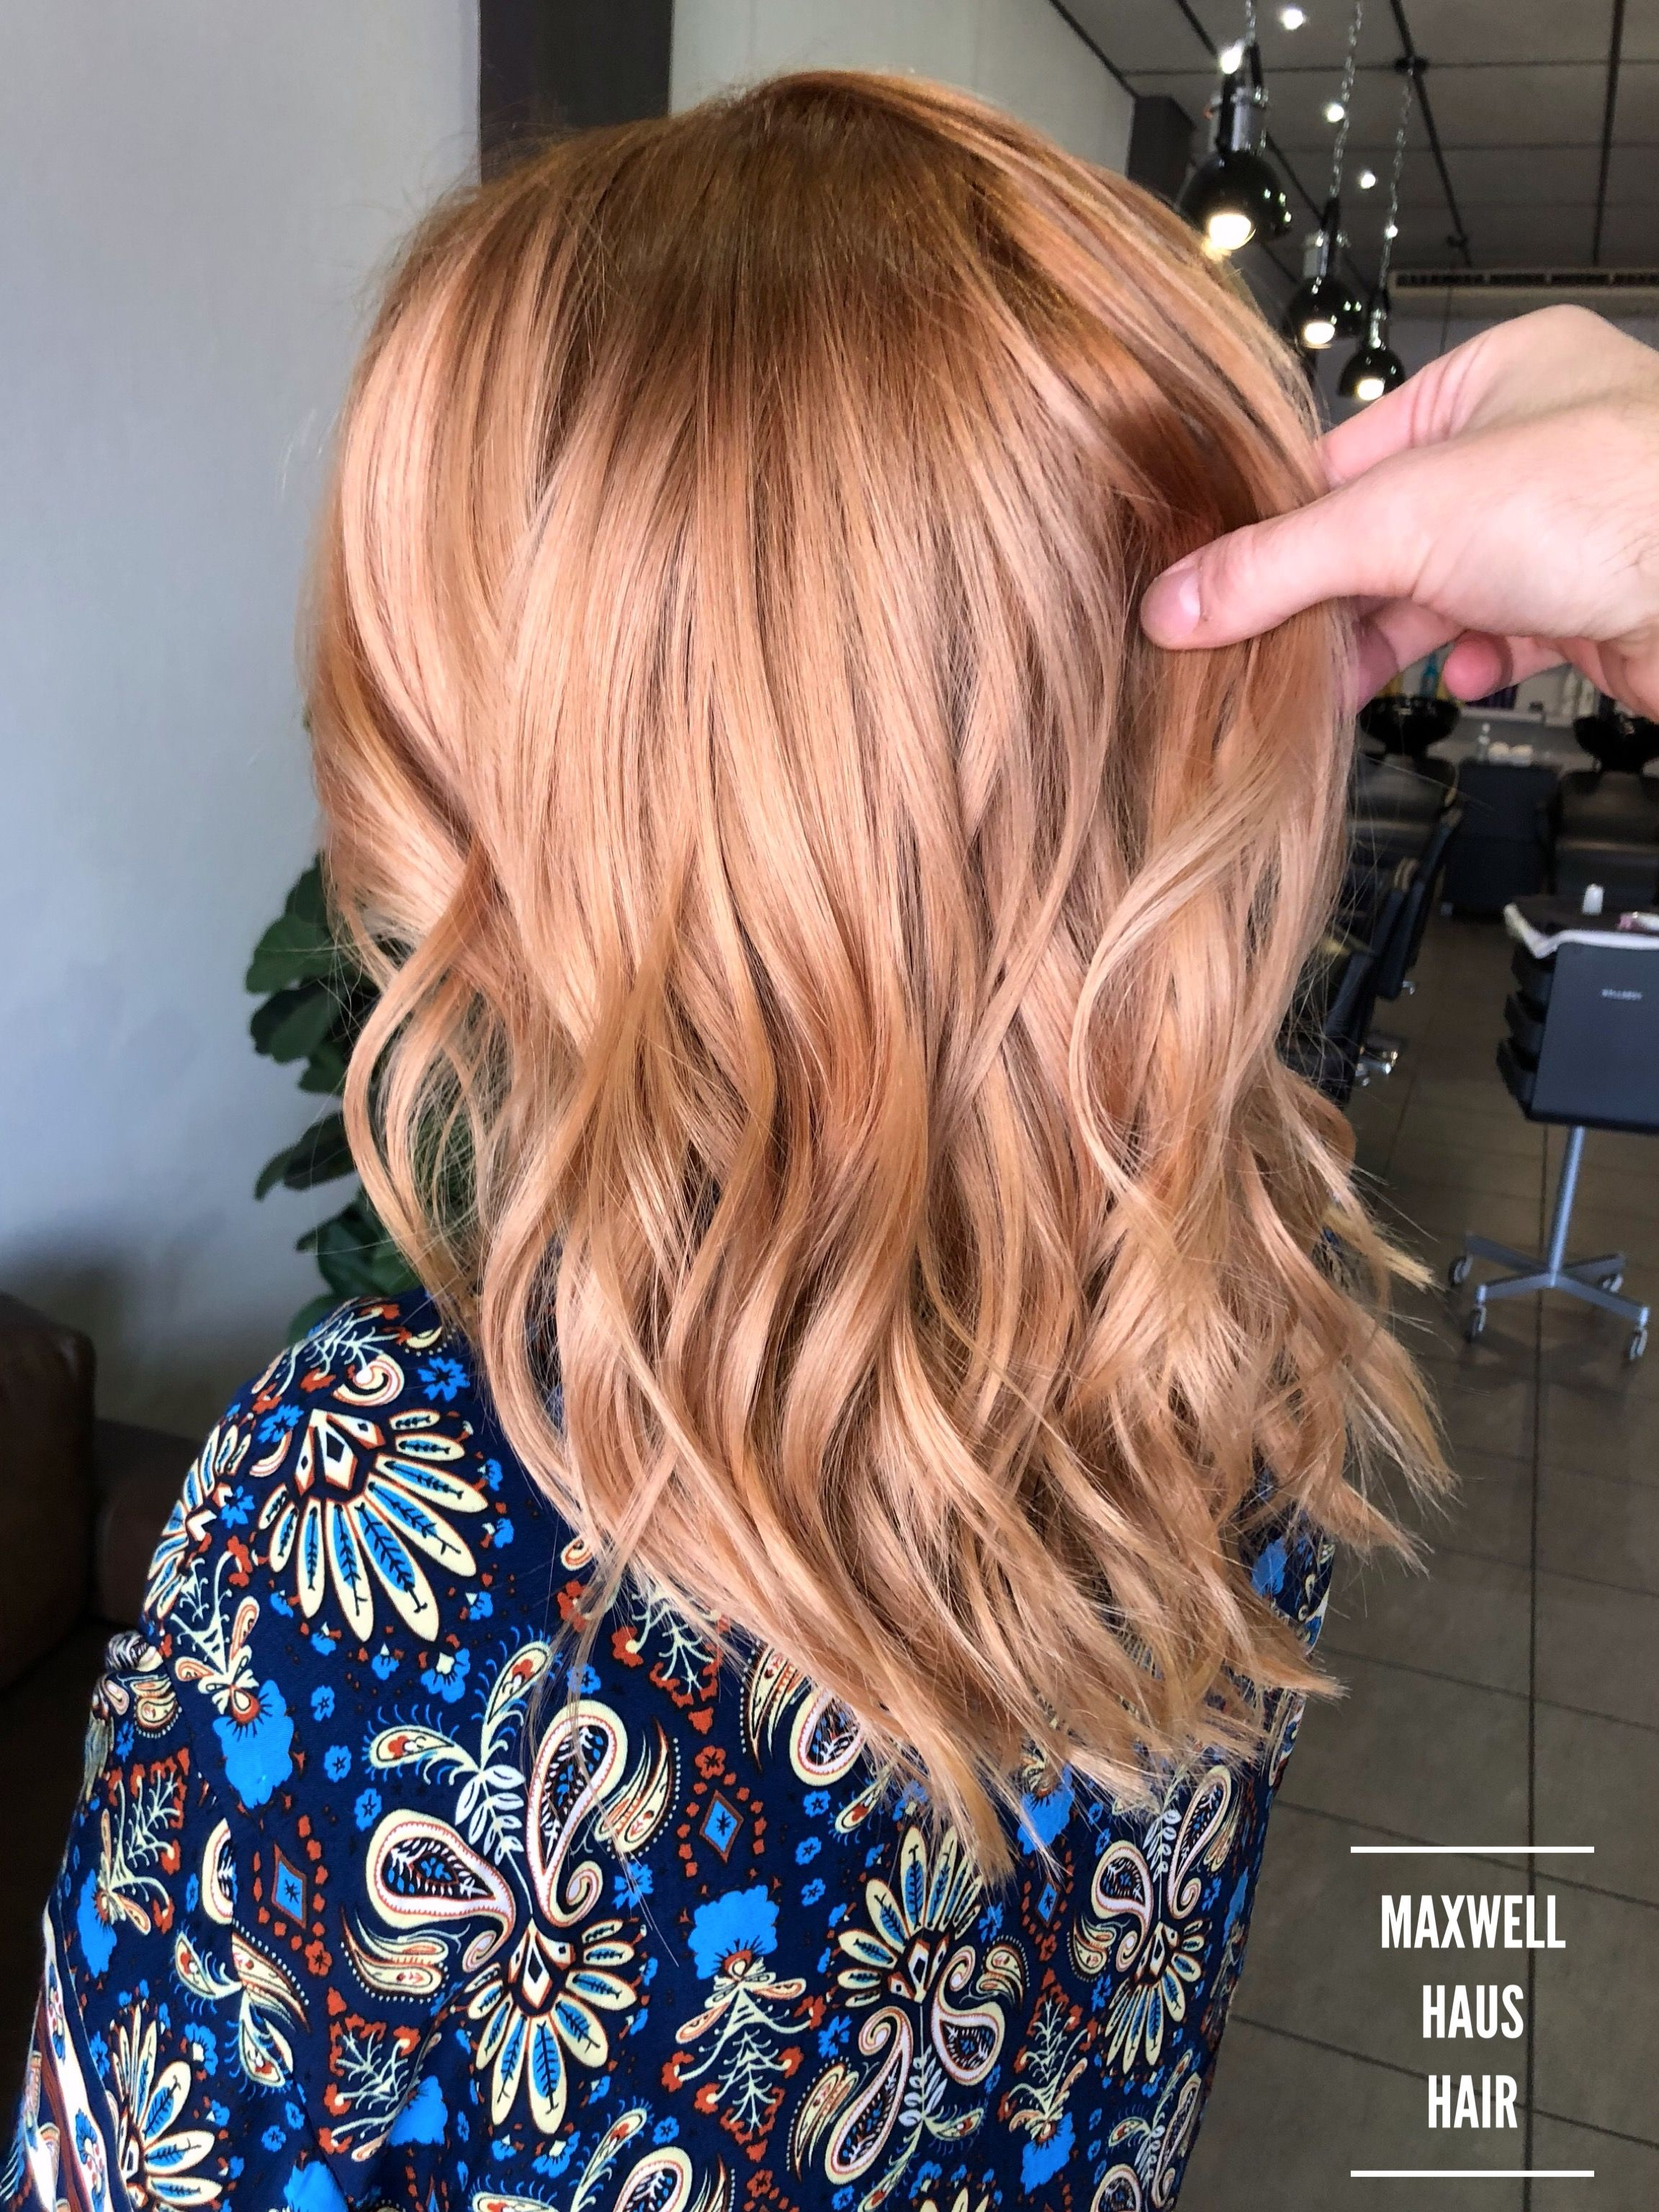 The Peachy Tones Makes The Color Pop Wella Illumina Formula